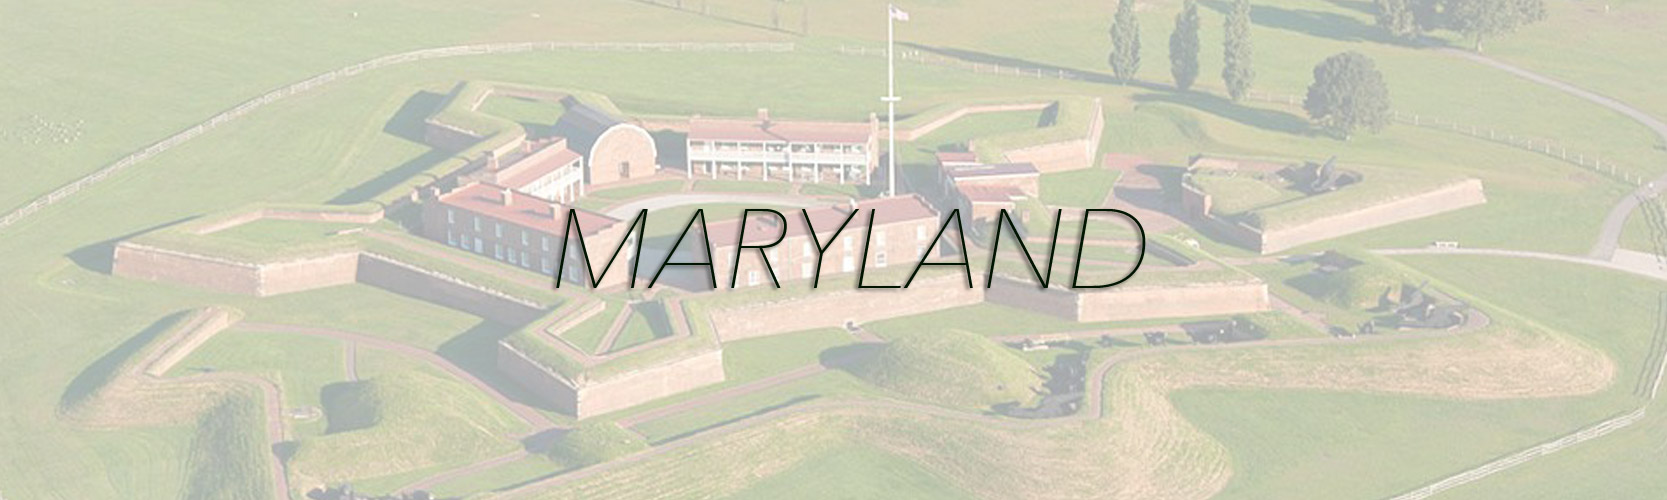 Shipping Futons, Sofa Beds, and Other Futon Shop products to Maryland